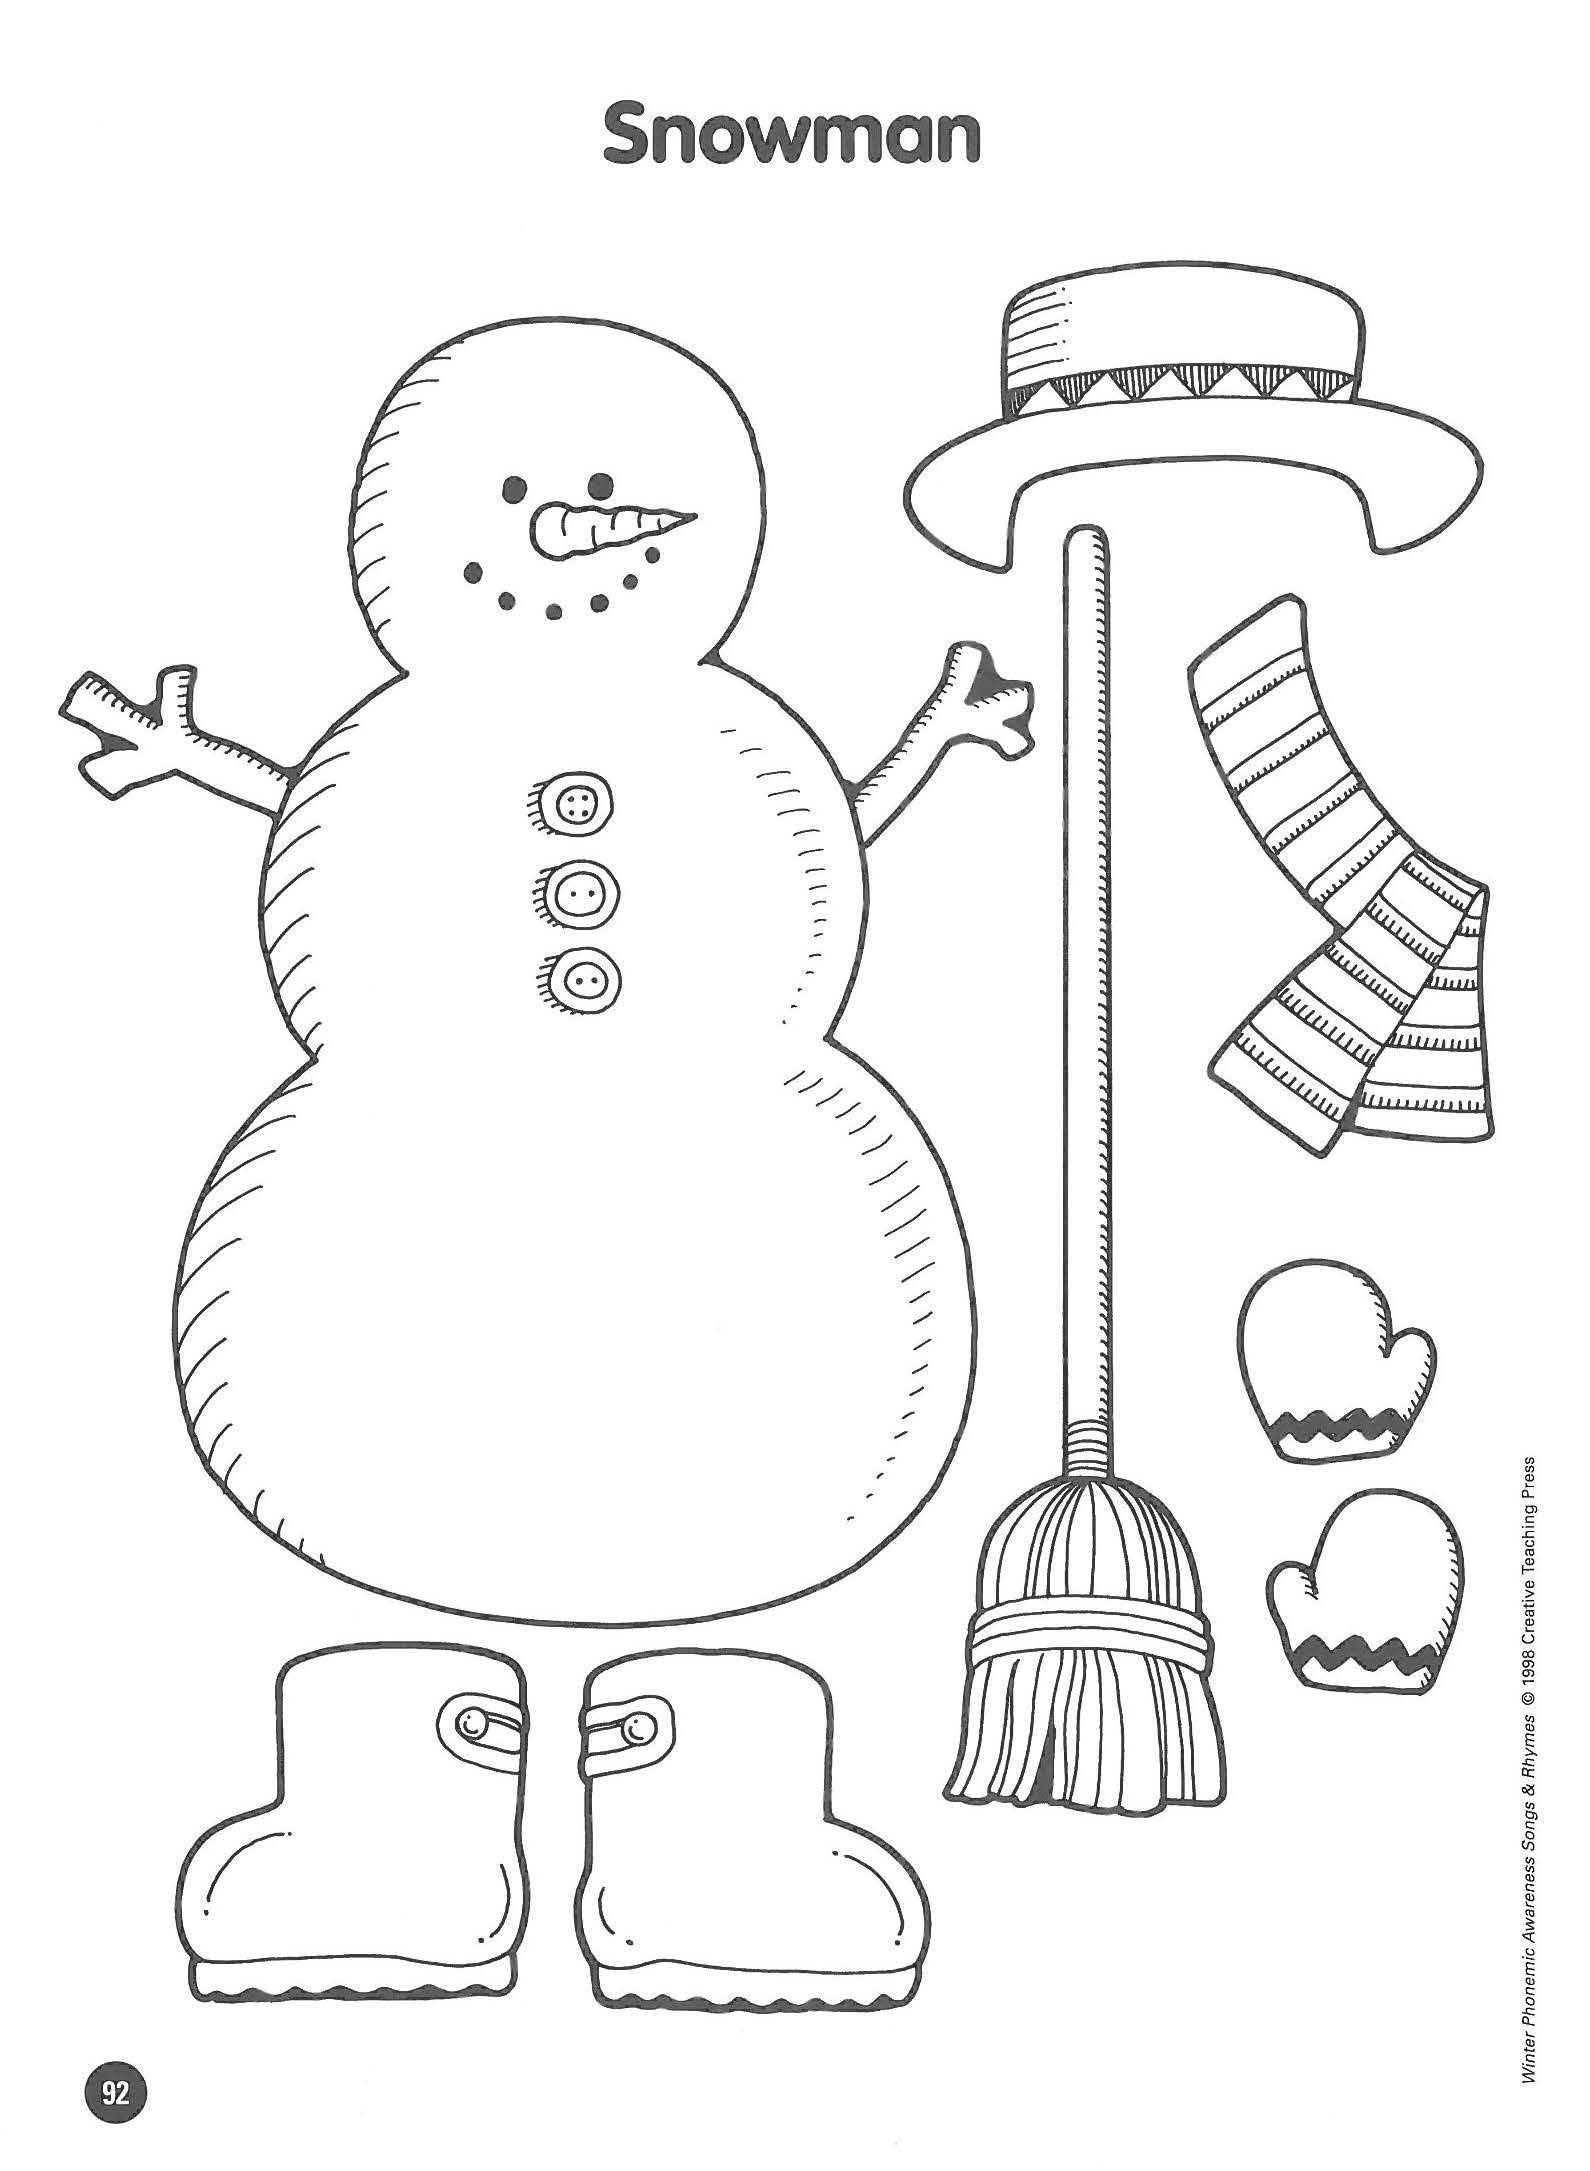 Snowman Math Worksheets Snowman Writing Paper Printable